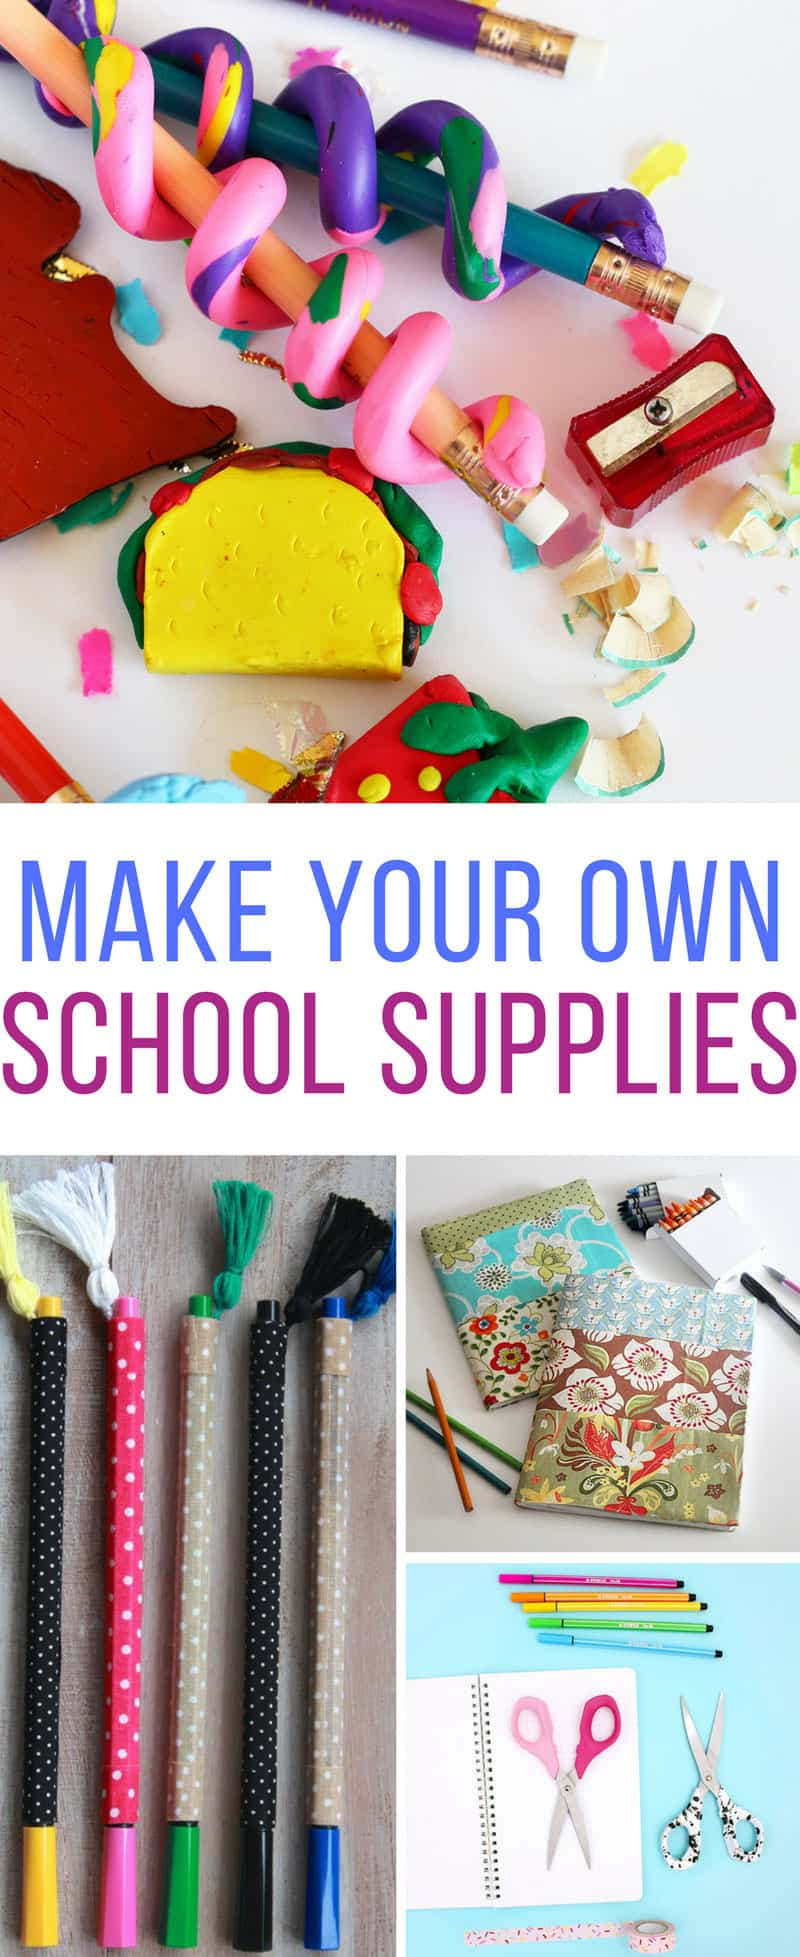 Loving these DIY back to school supplies! Thanks for sharing!